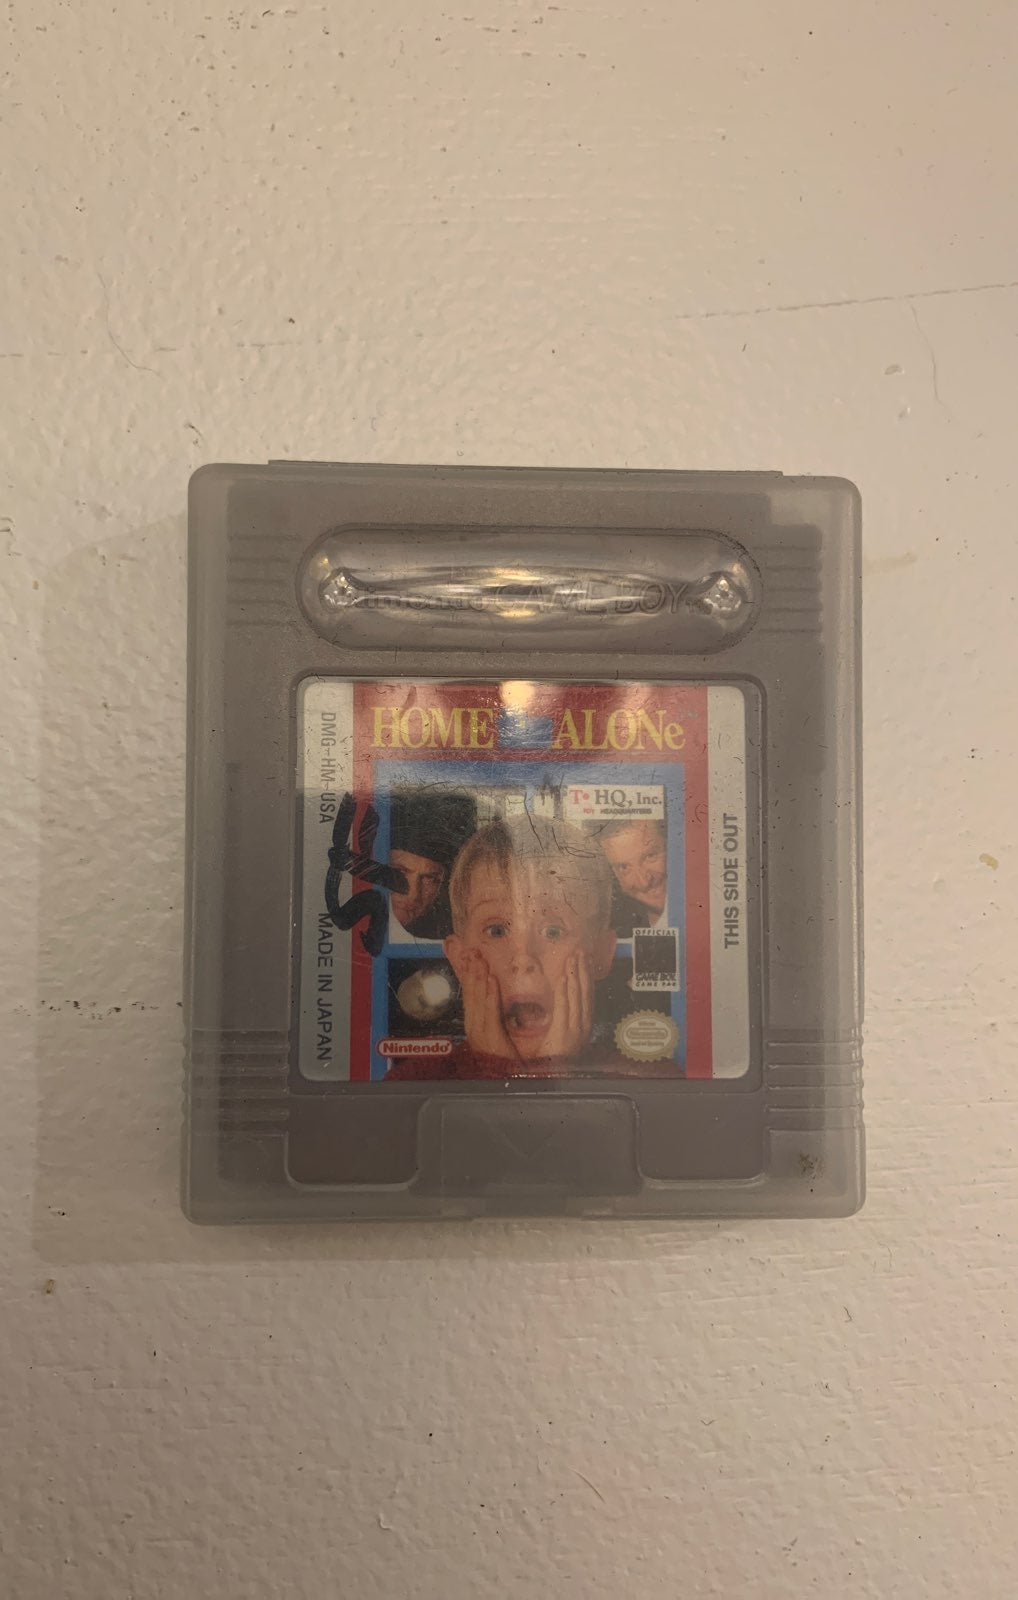 Home Alone Gameboy game